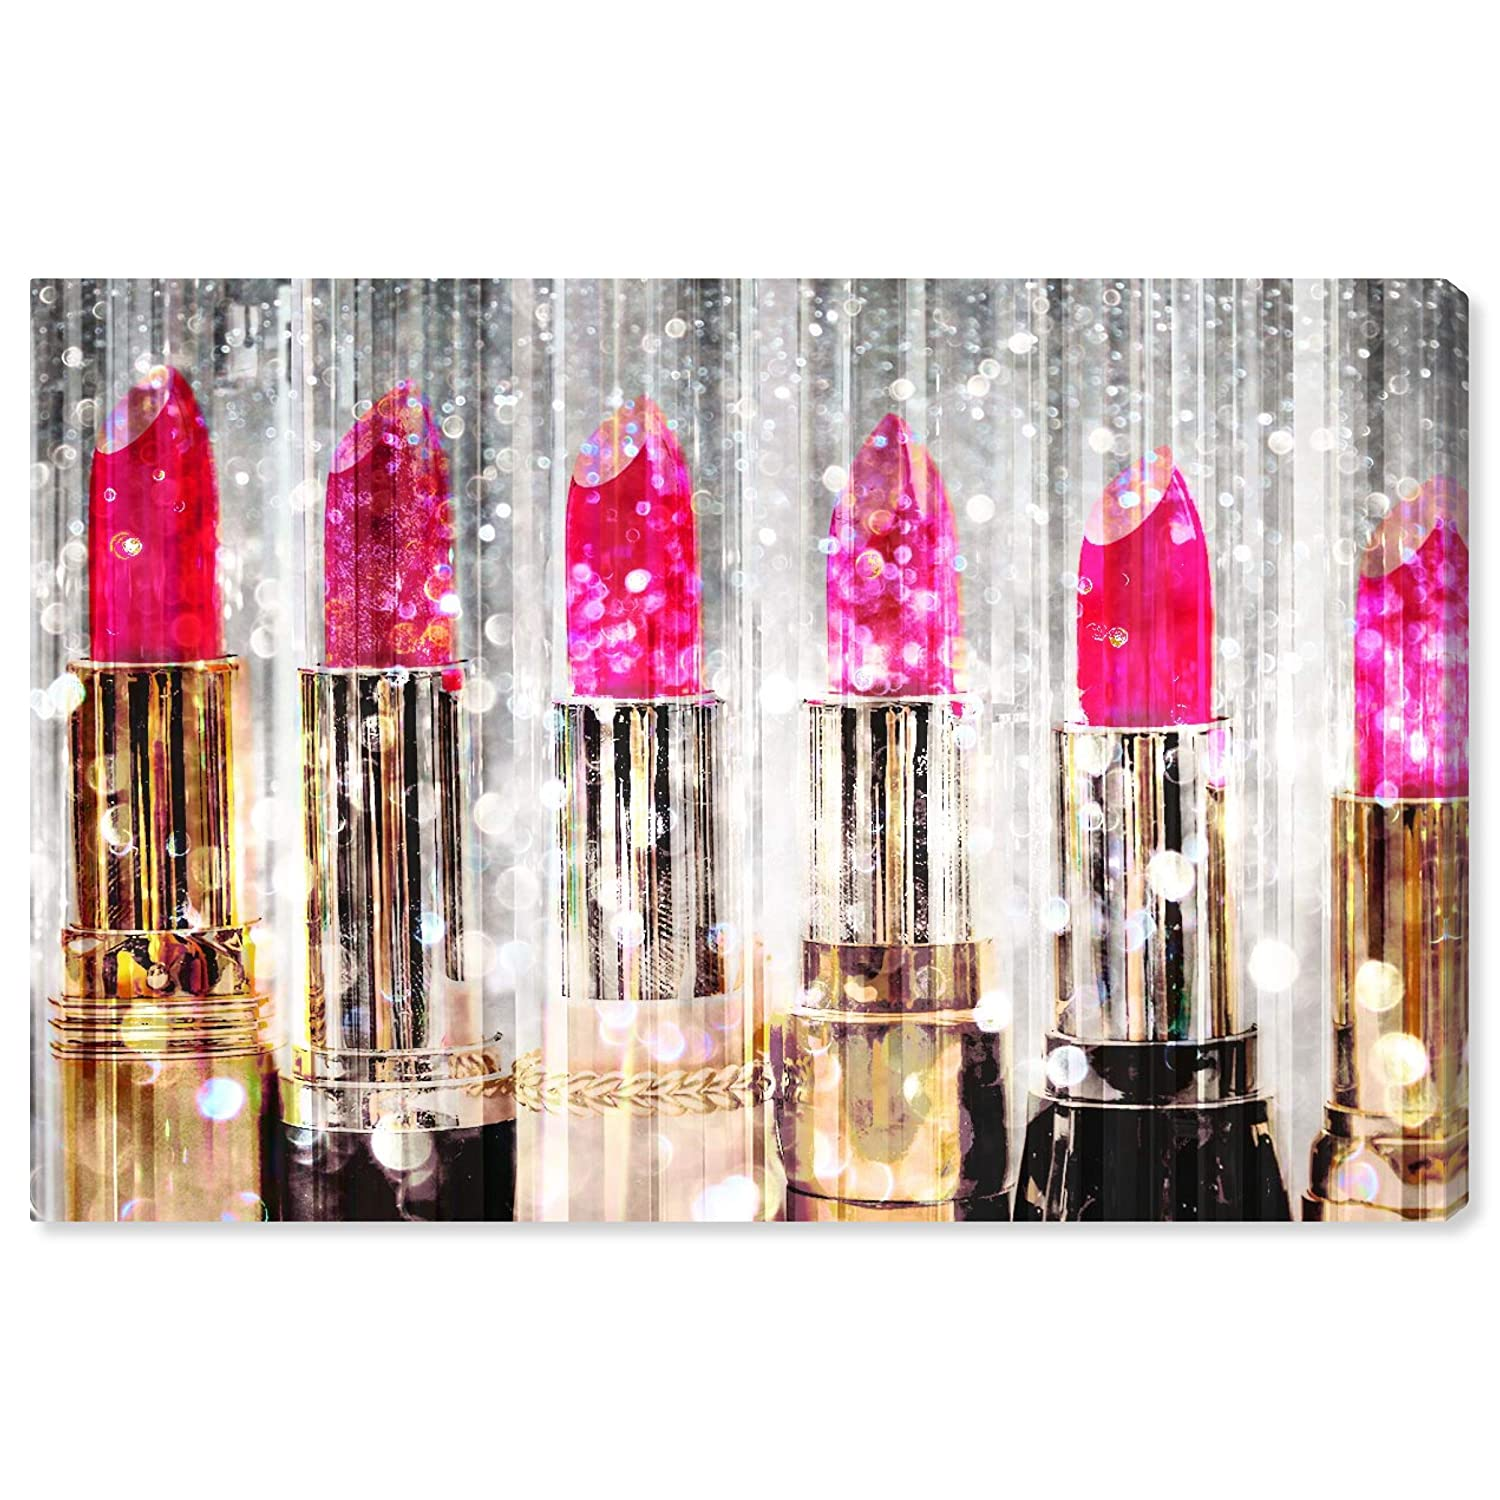 "The Oliver Gal Artist Co. Fashion and Glam Wall Art Canvas Prints 'Lipstick Collection' Home Décor, 15"" x 10"", Pink, Gold"